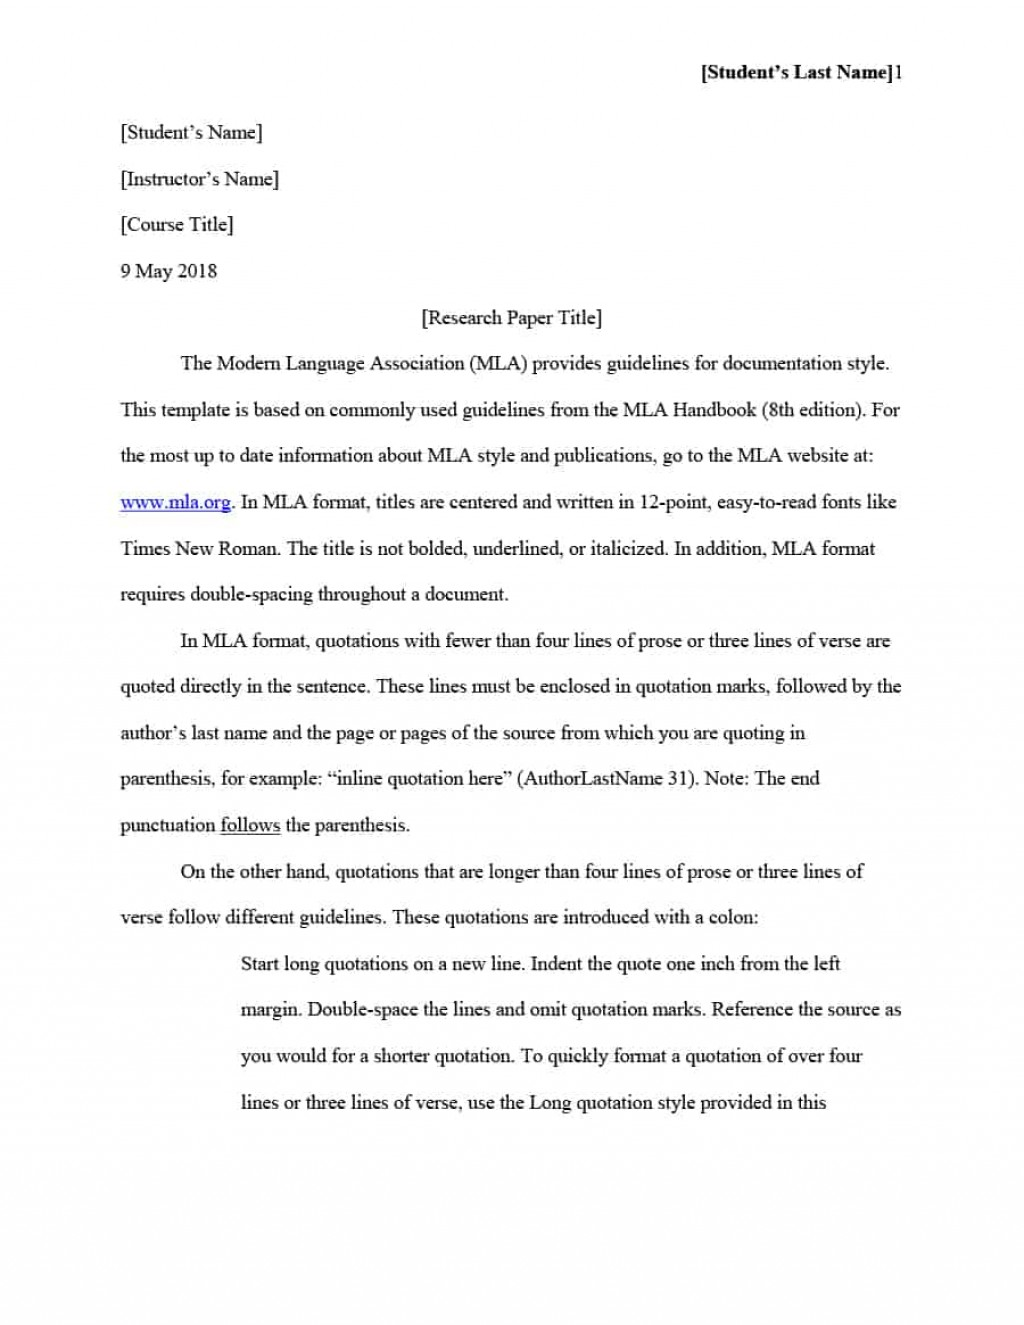 008 Essay Example What Is Mla Format For Essays Template Unique Proper An 8 Large